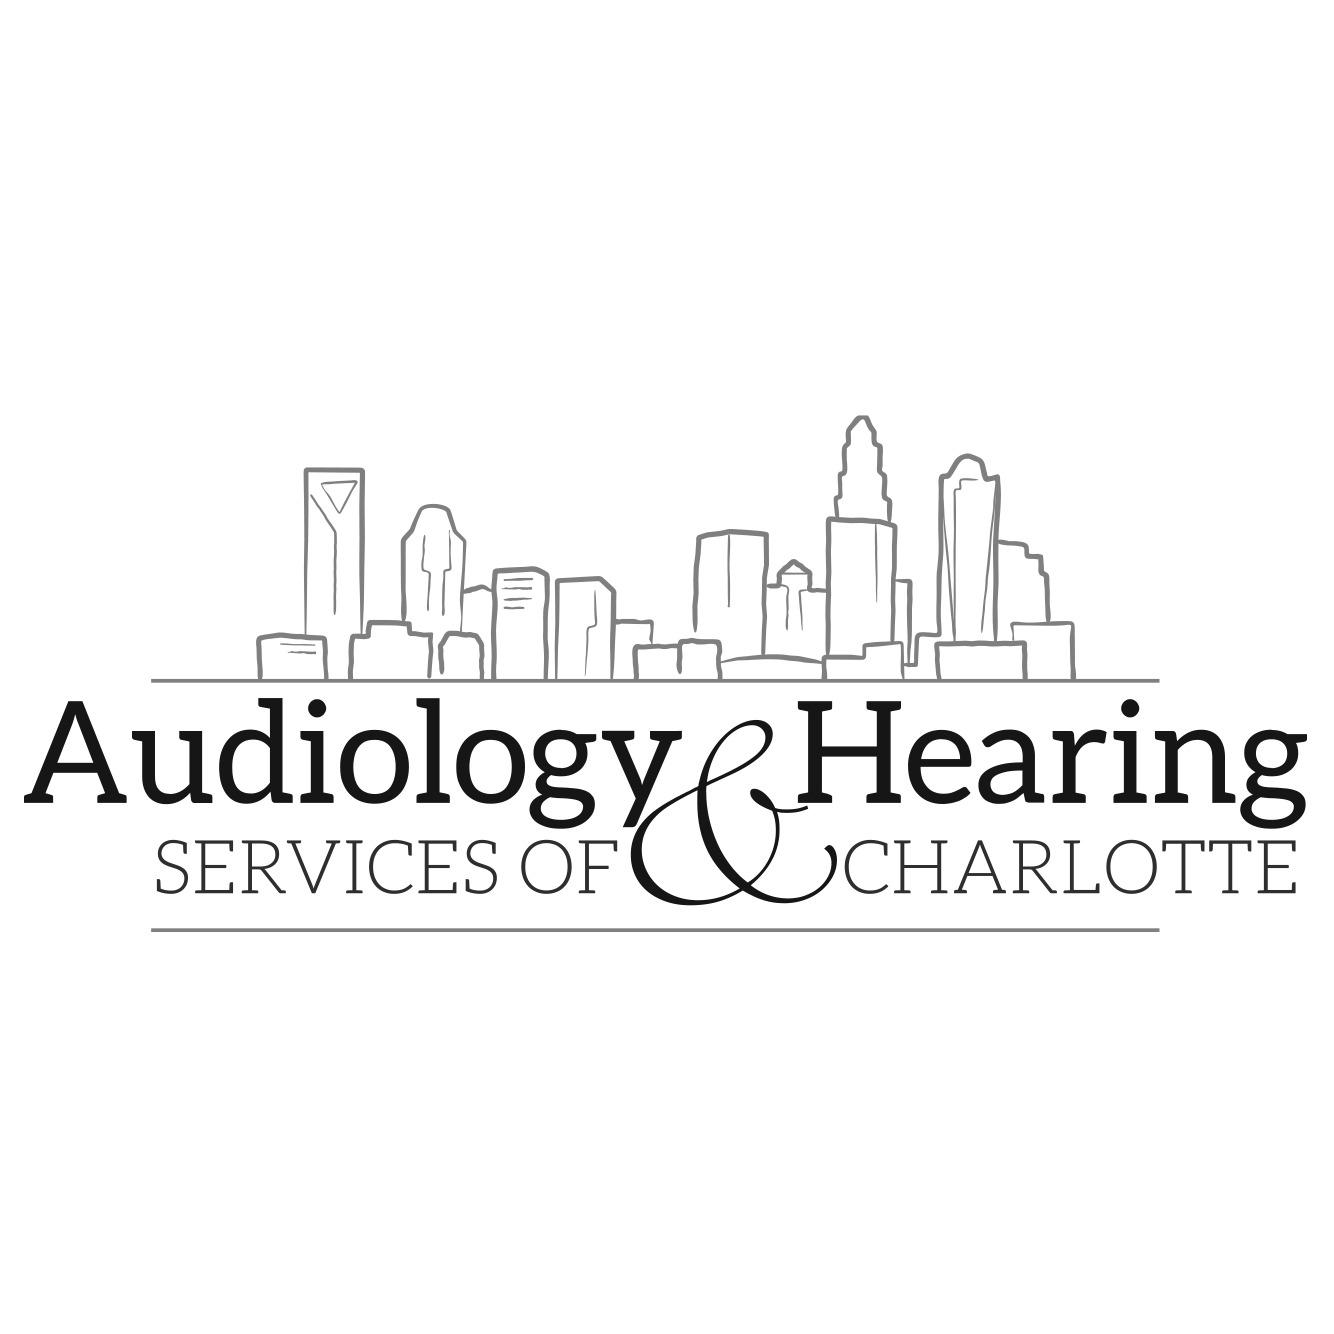 Audiology & Hearing Services of Charlotte